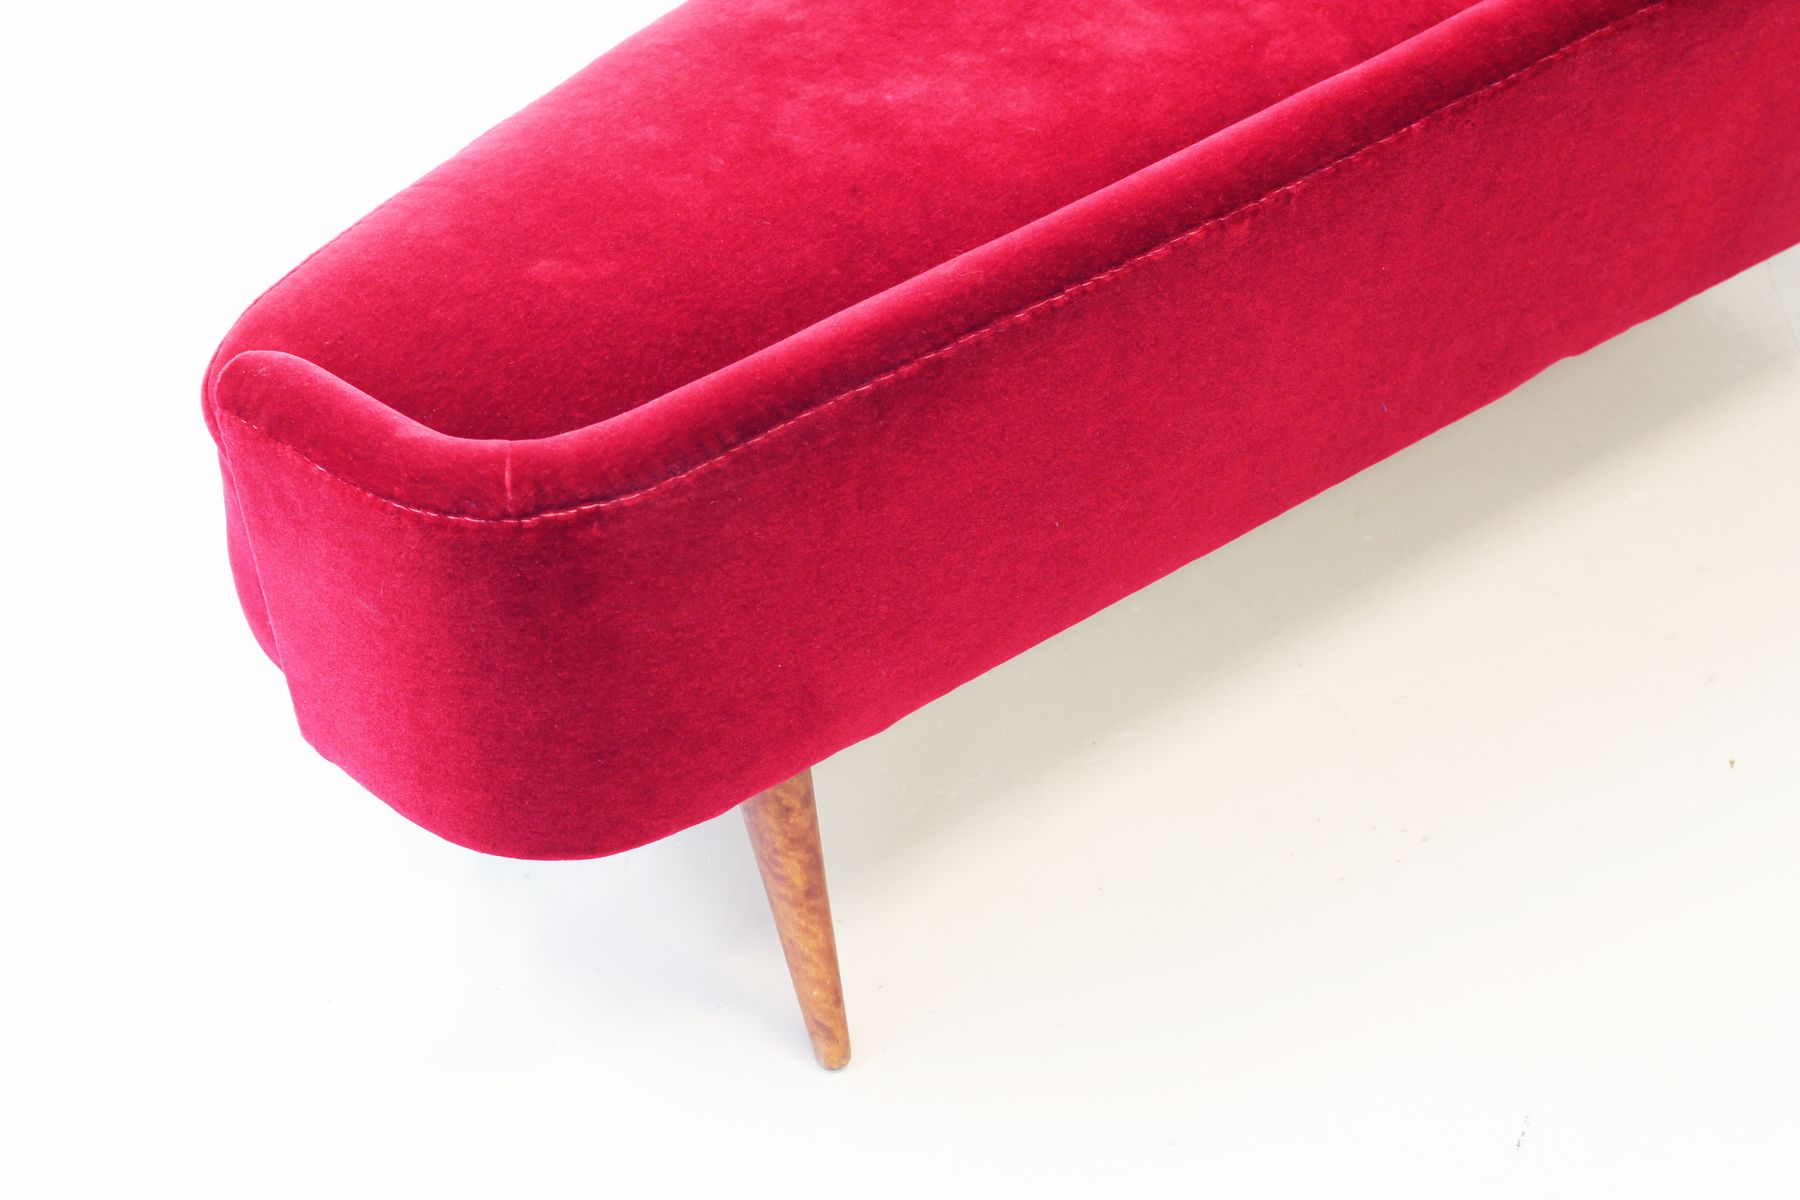 Singoalla Chaise Lounge by Gillis lundgren for Ikea 1961 for sale at Pamono